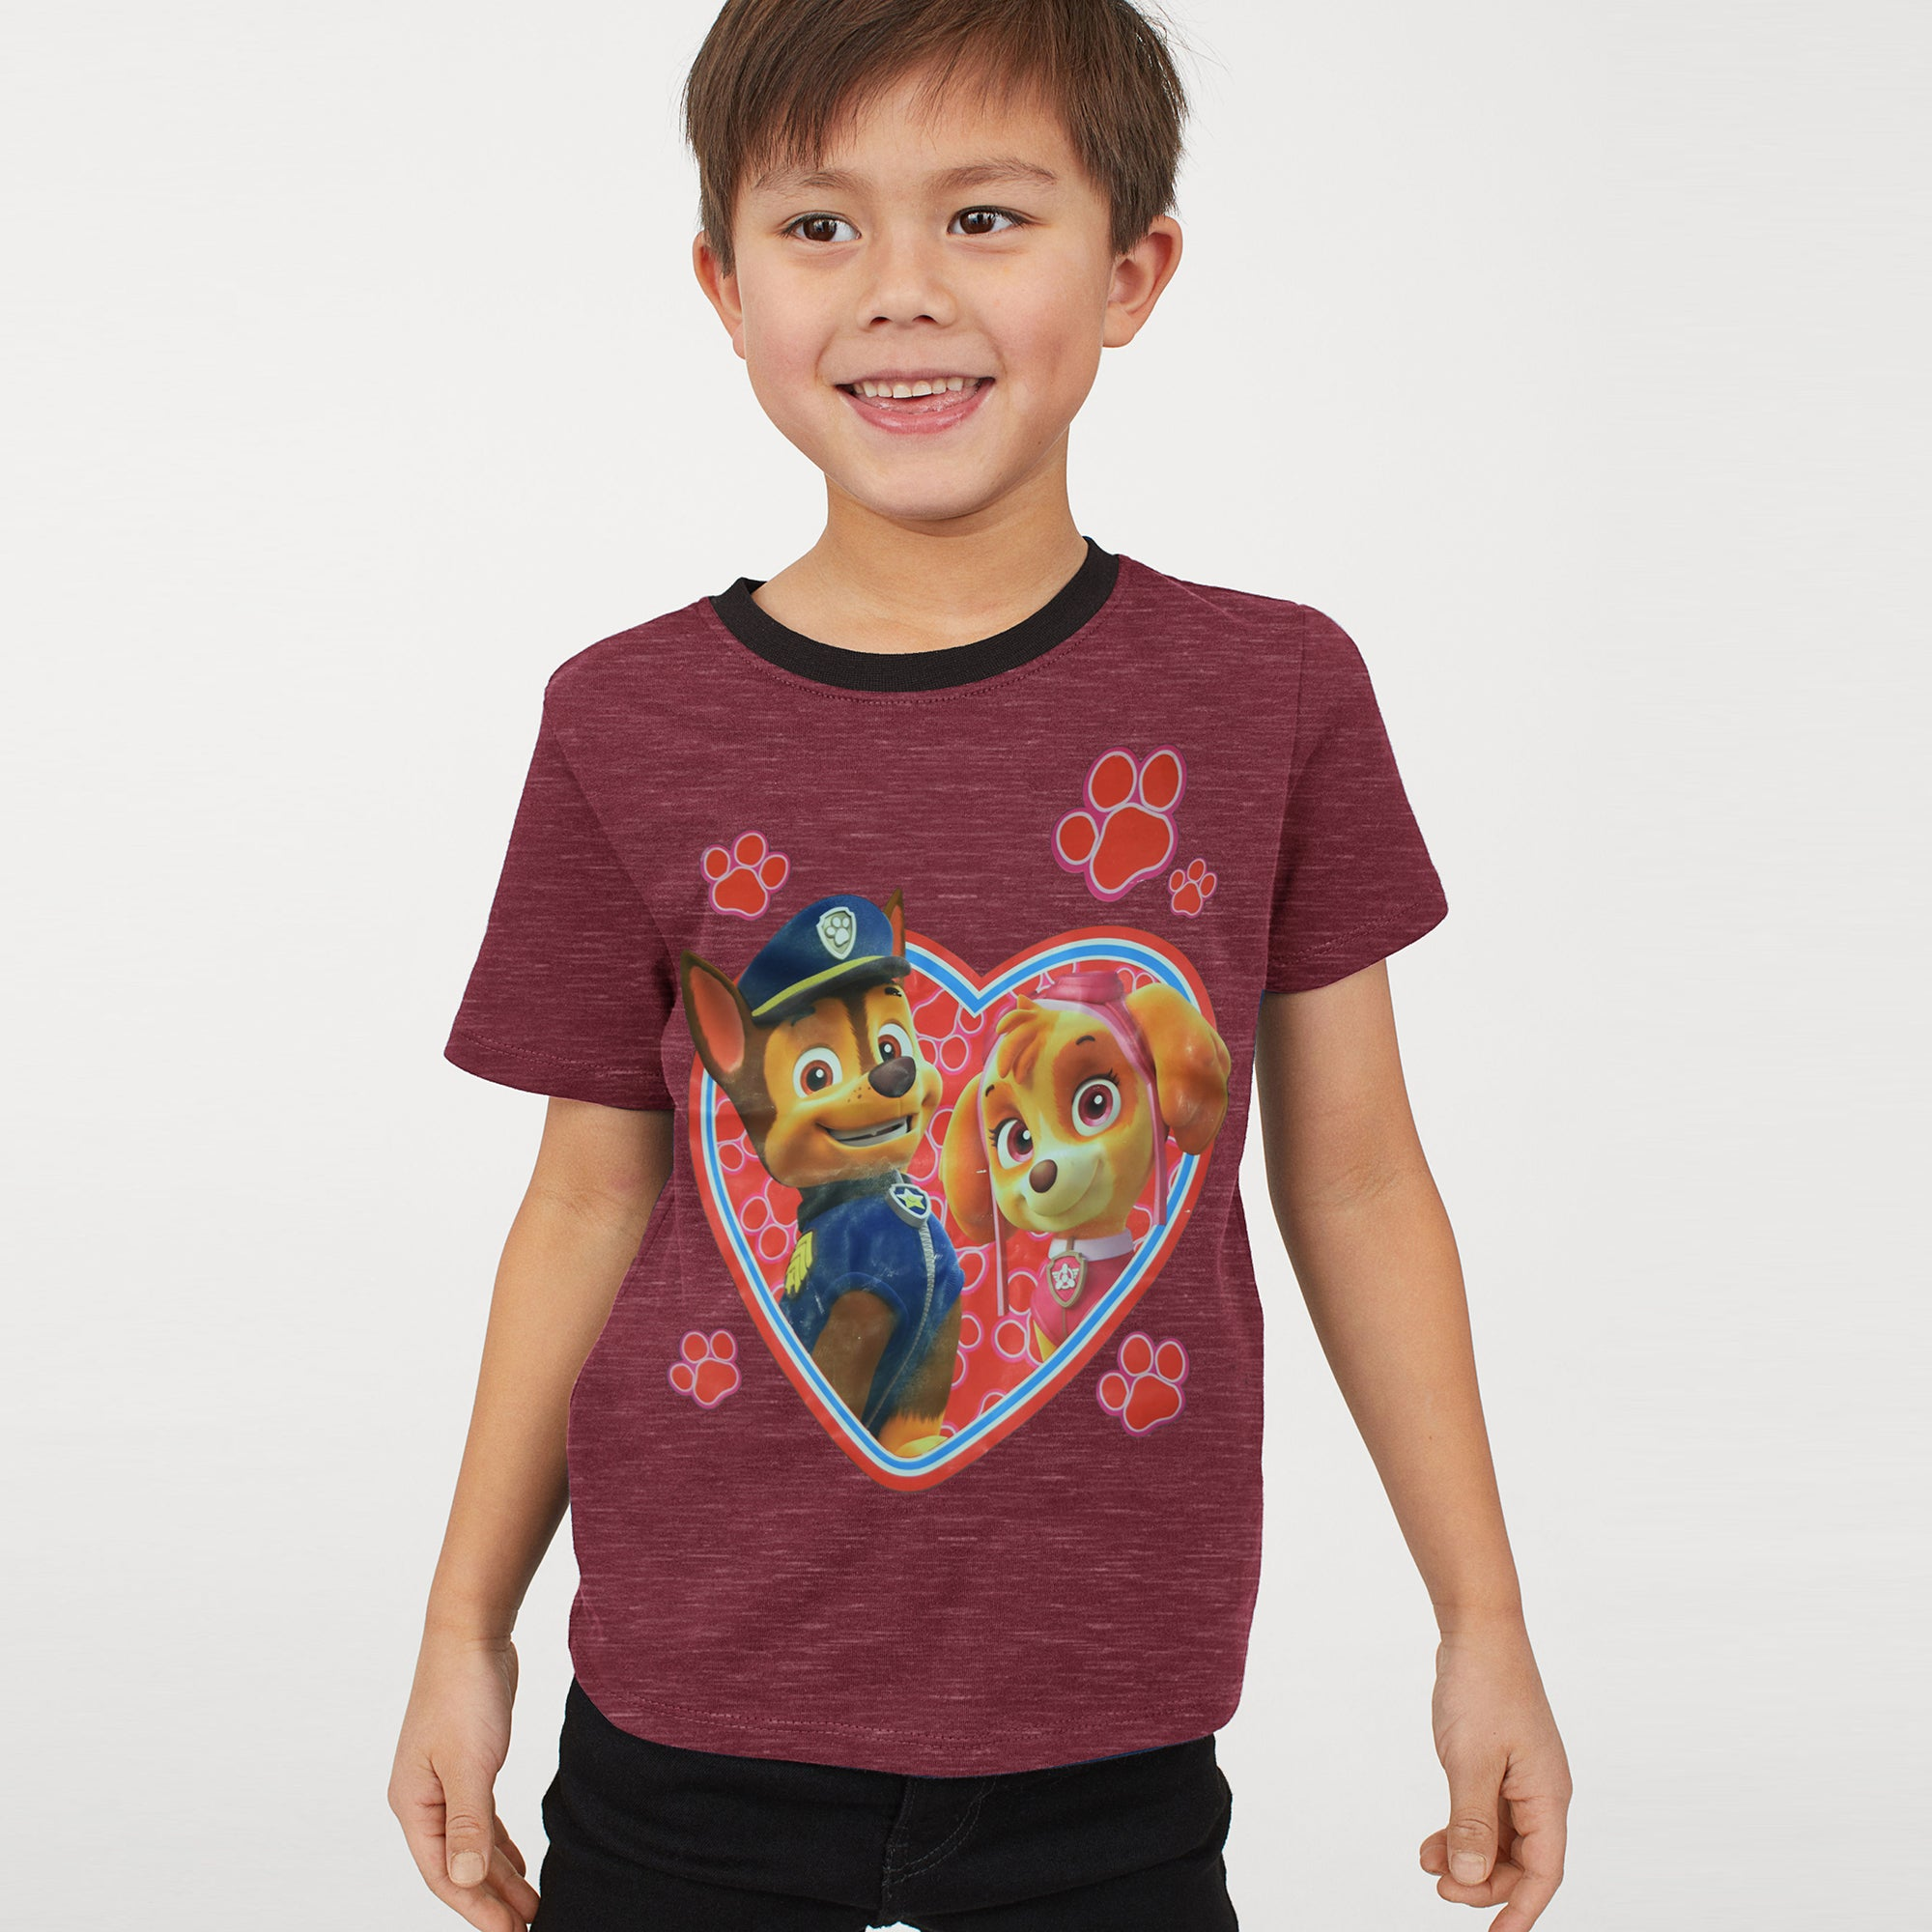 H&M Crew Neck Single Jersey T Shirt For Kids-NA8659